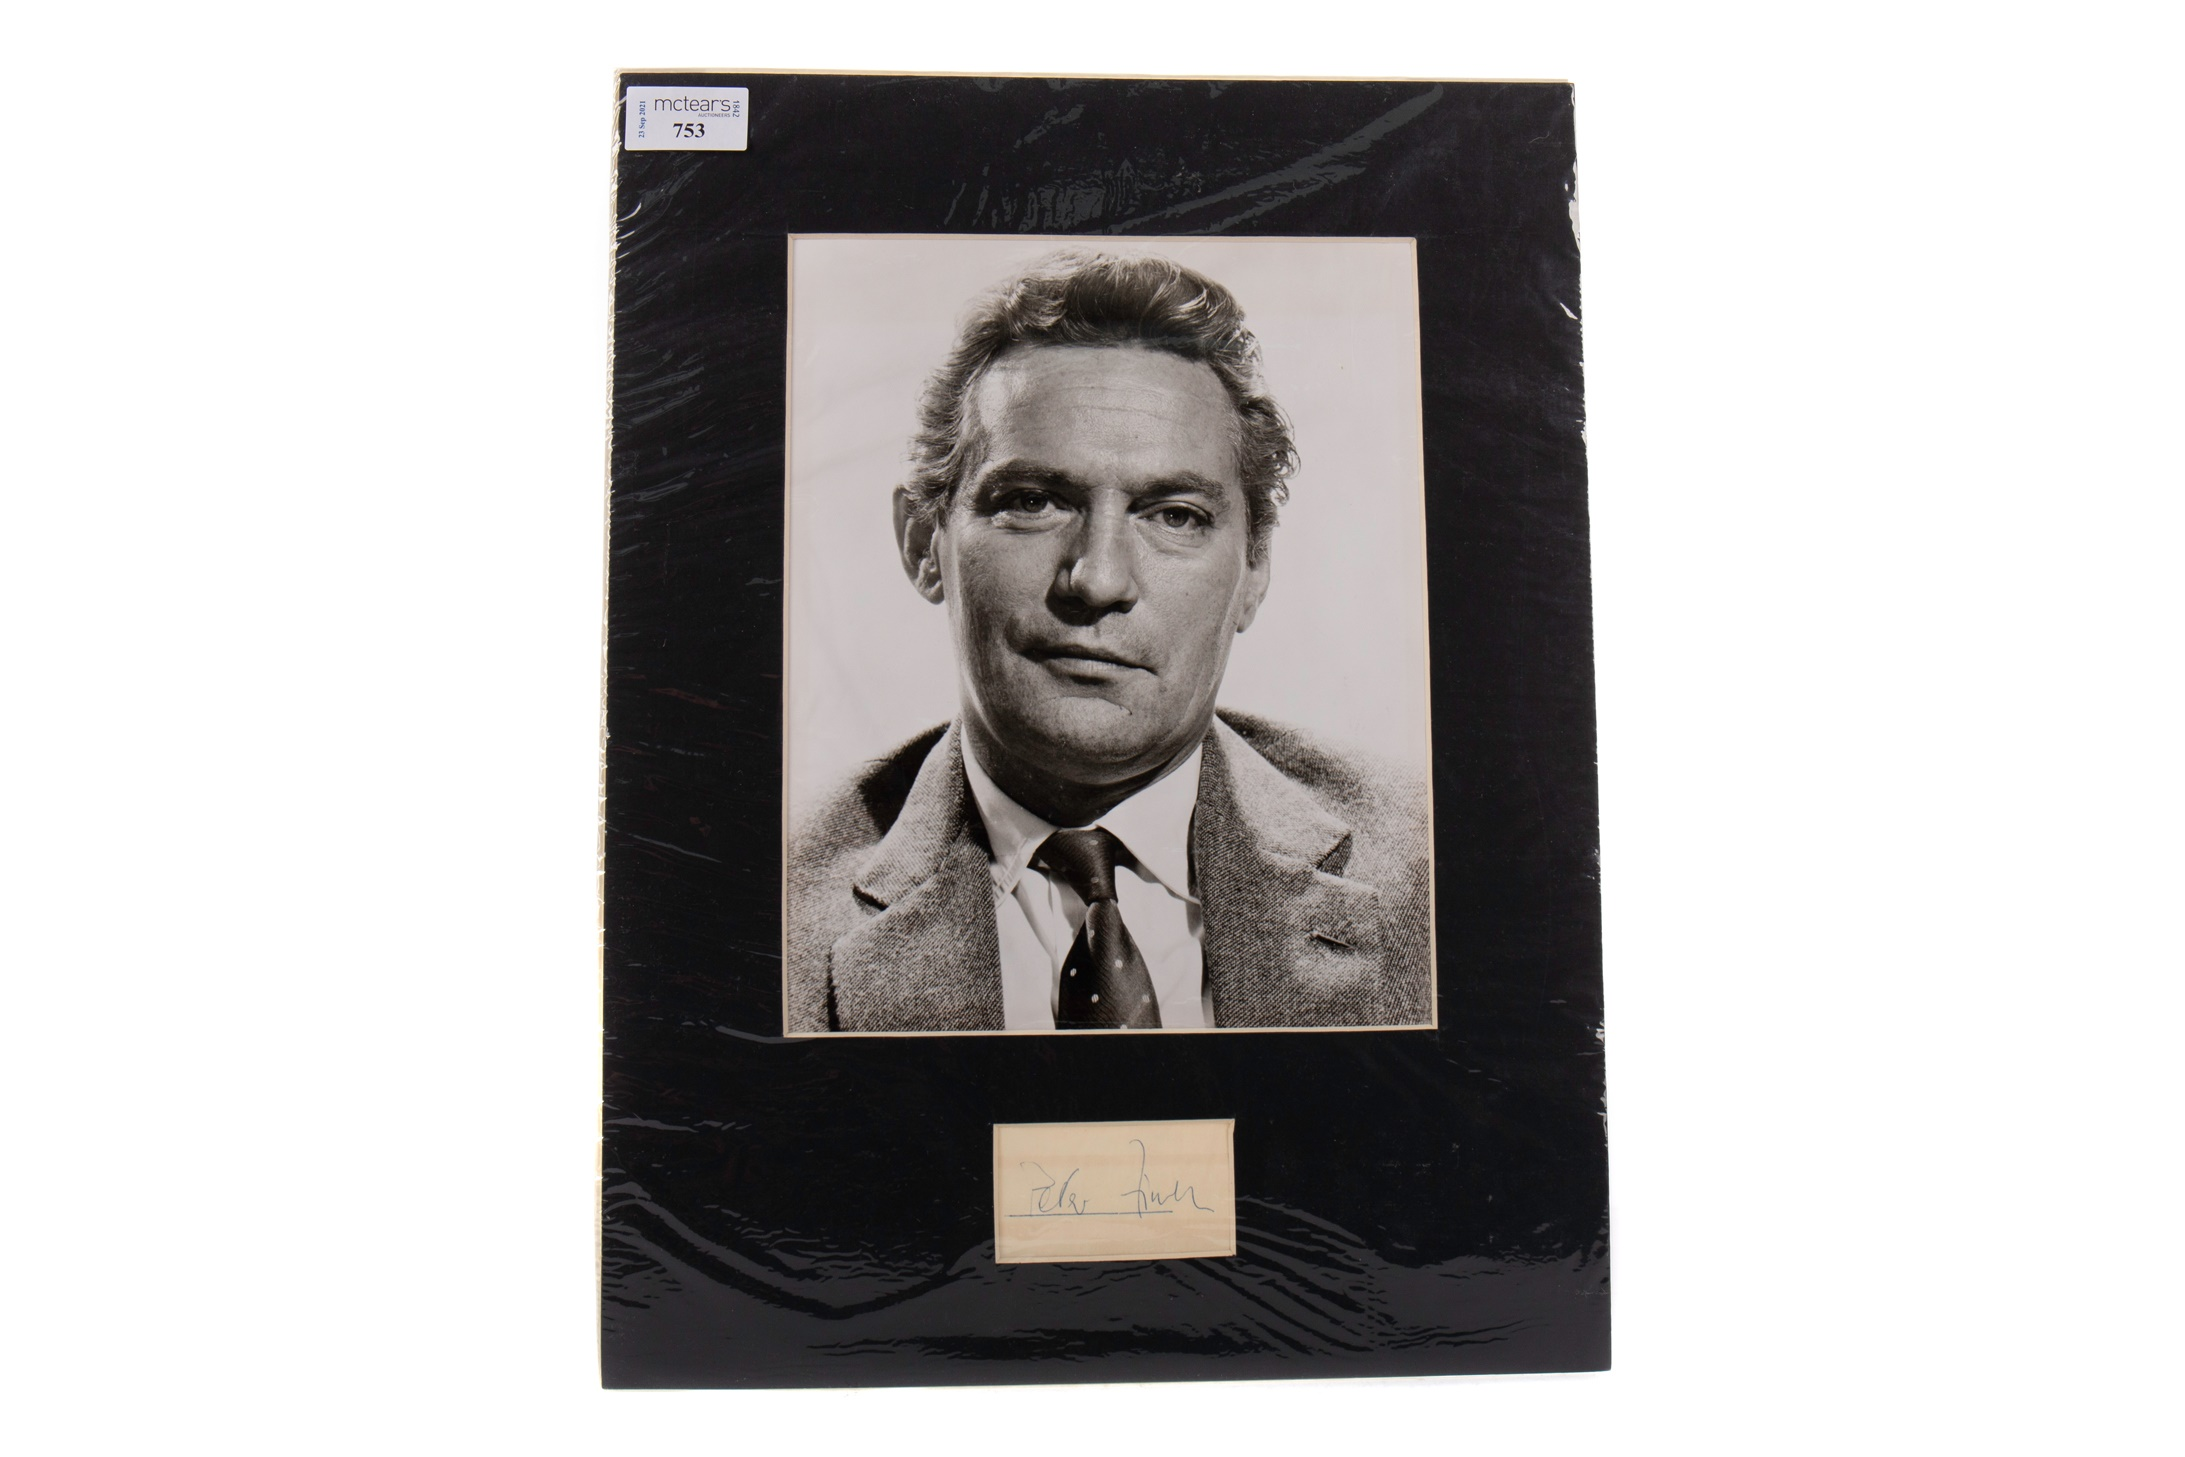 A PHOTOGRAPH OF PETER FINCH